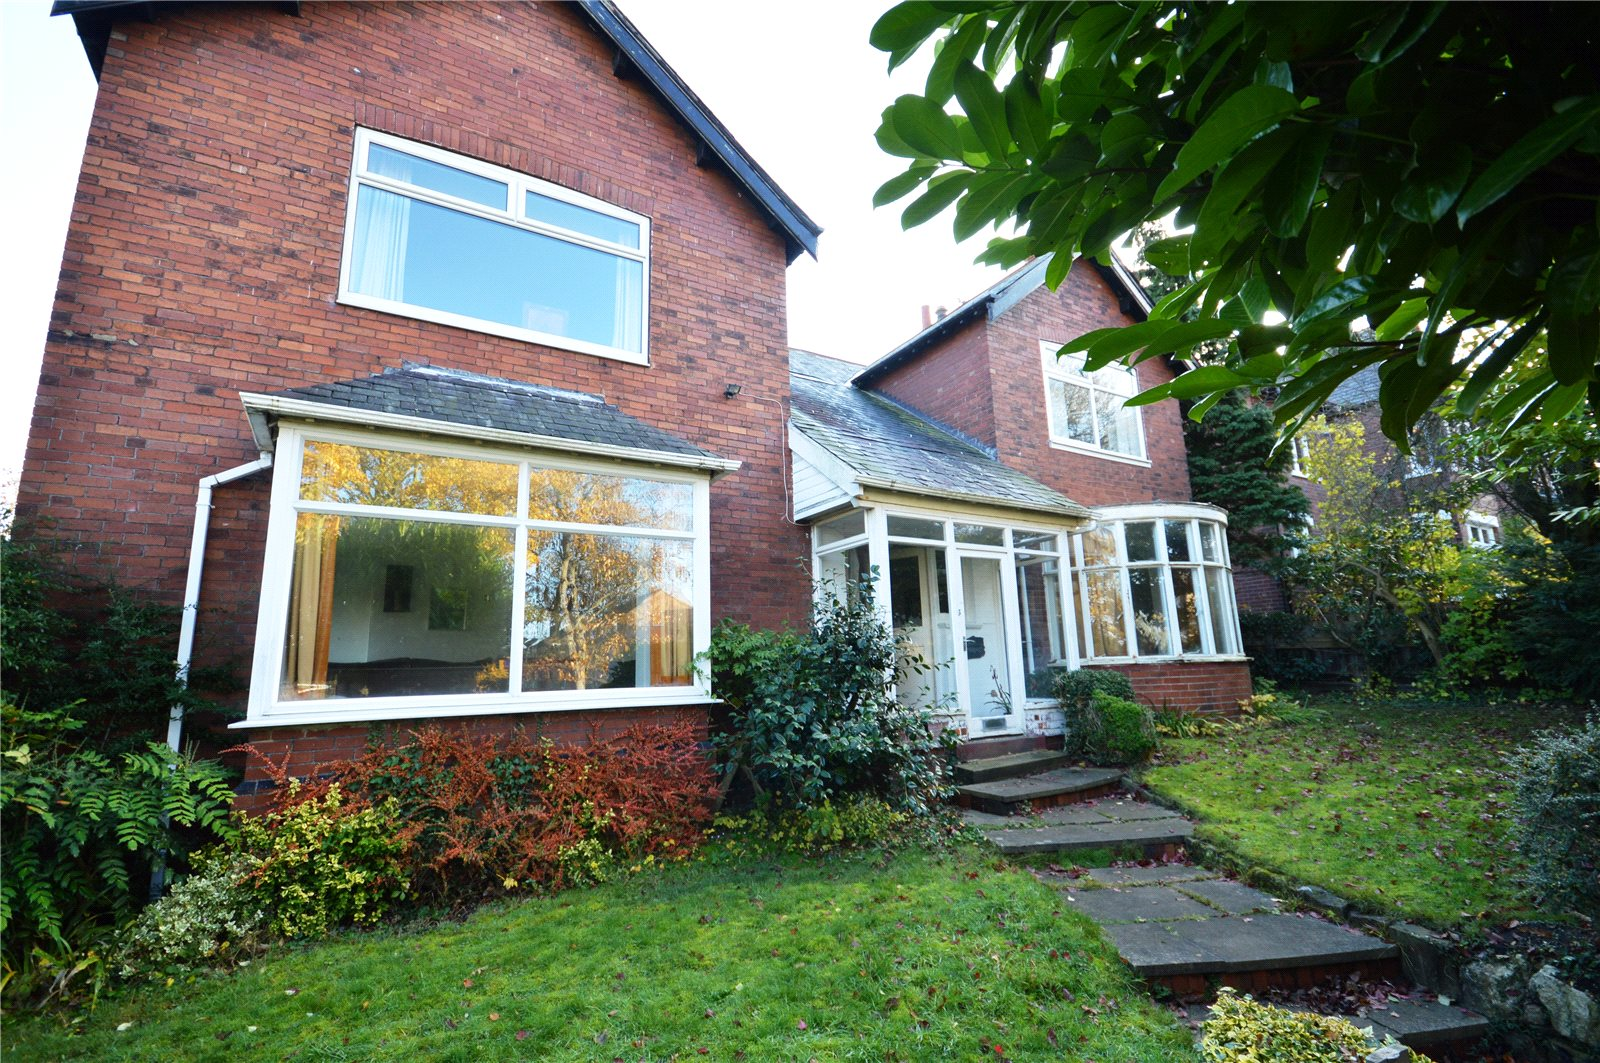 Property for sale in Wakefield, exterior of detached home